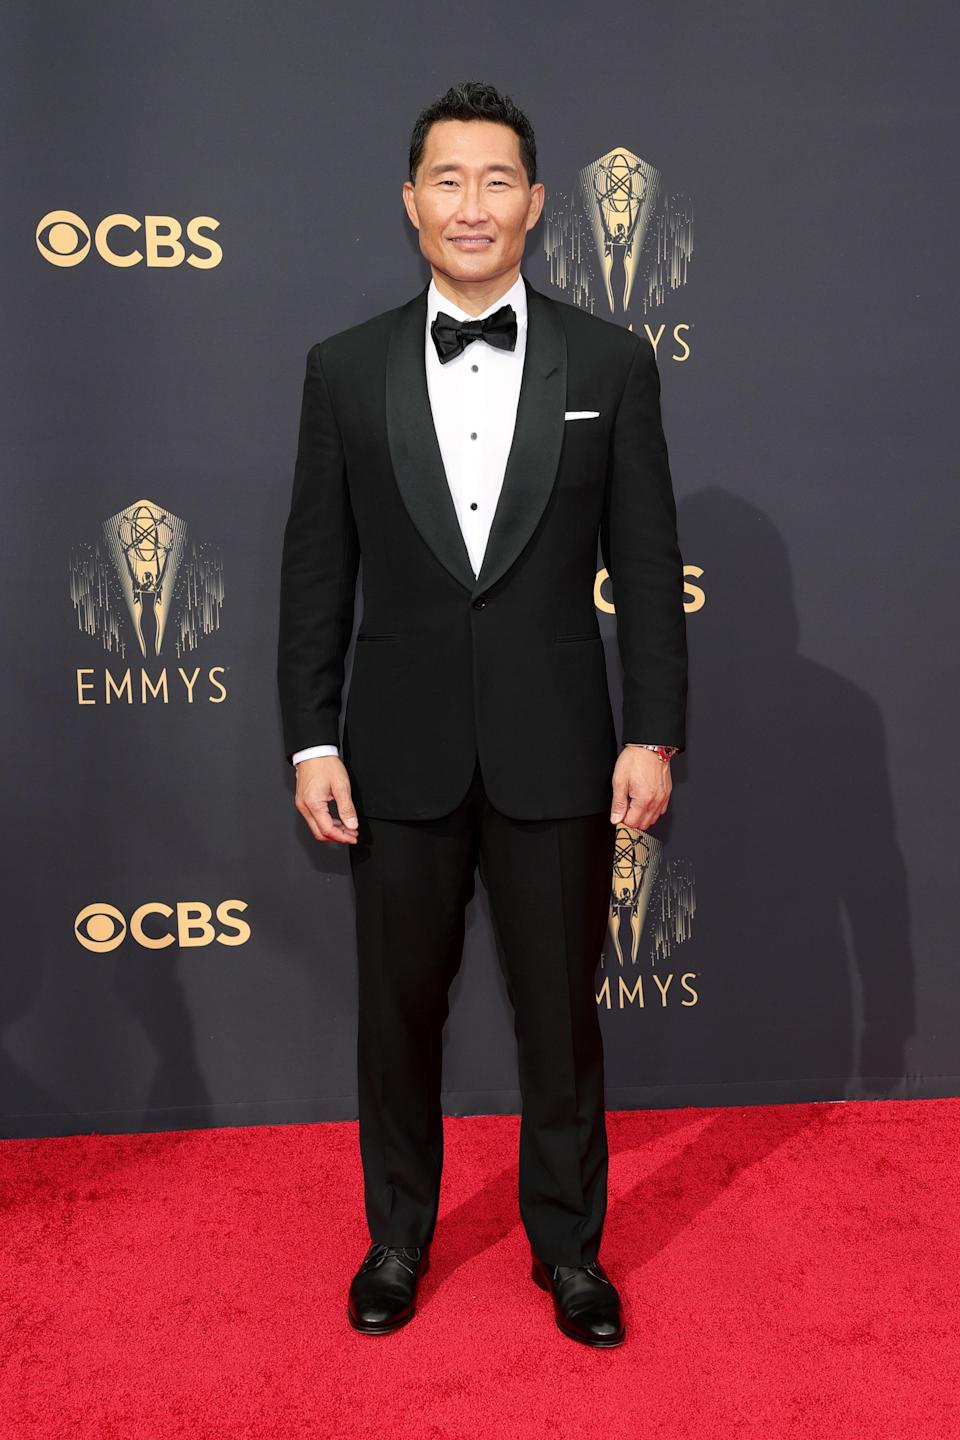 Daniel Dae Kim was all about the classically sophisticated tuxedo.